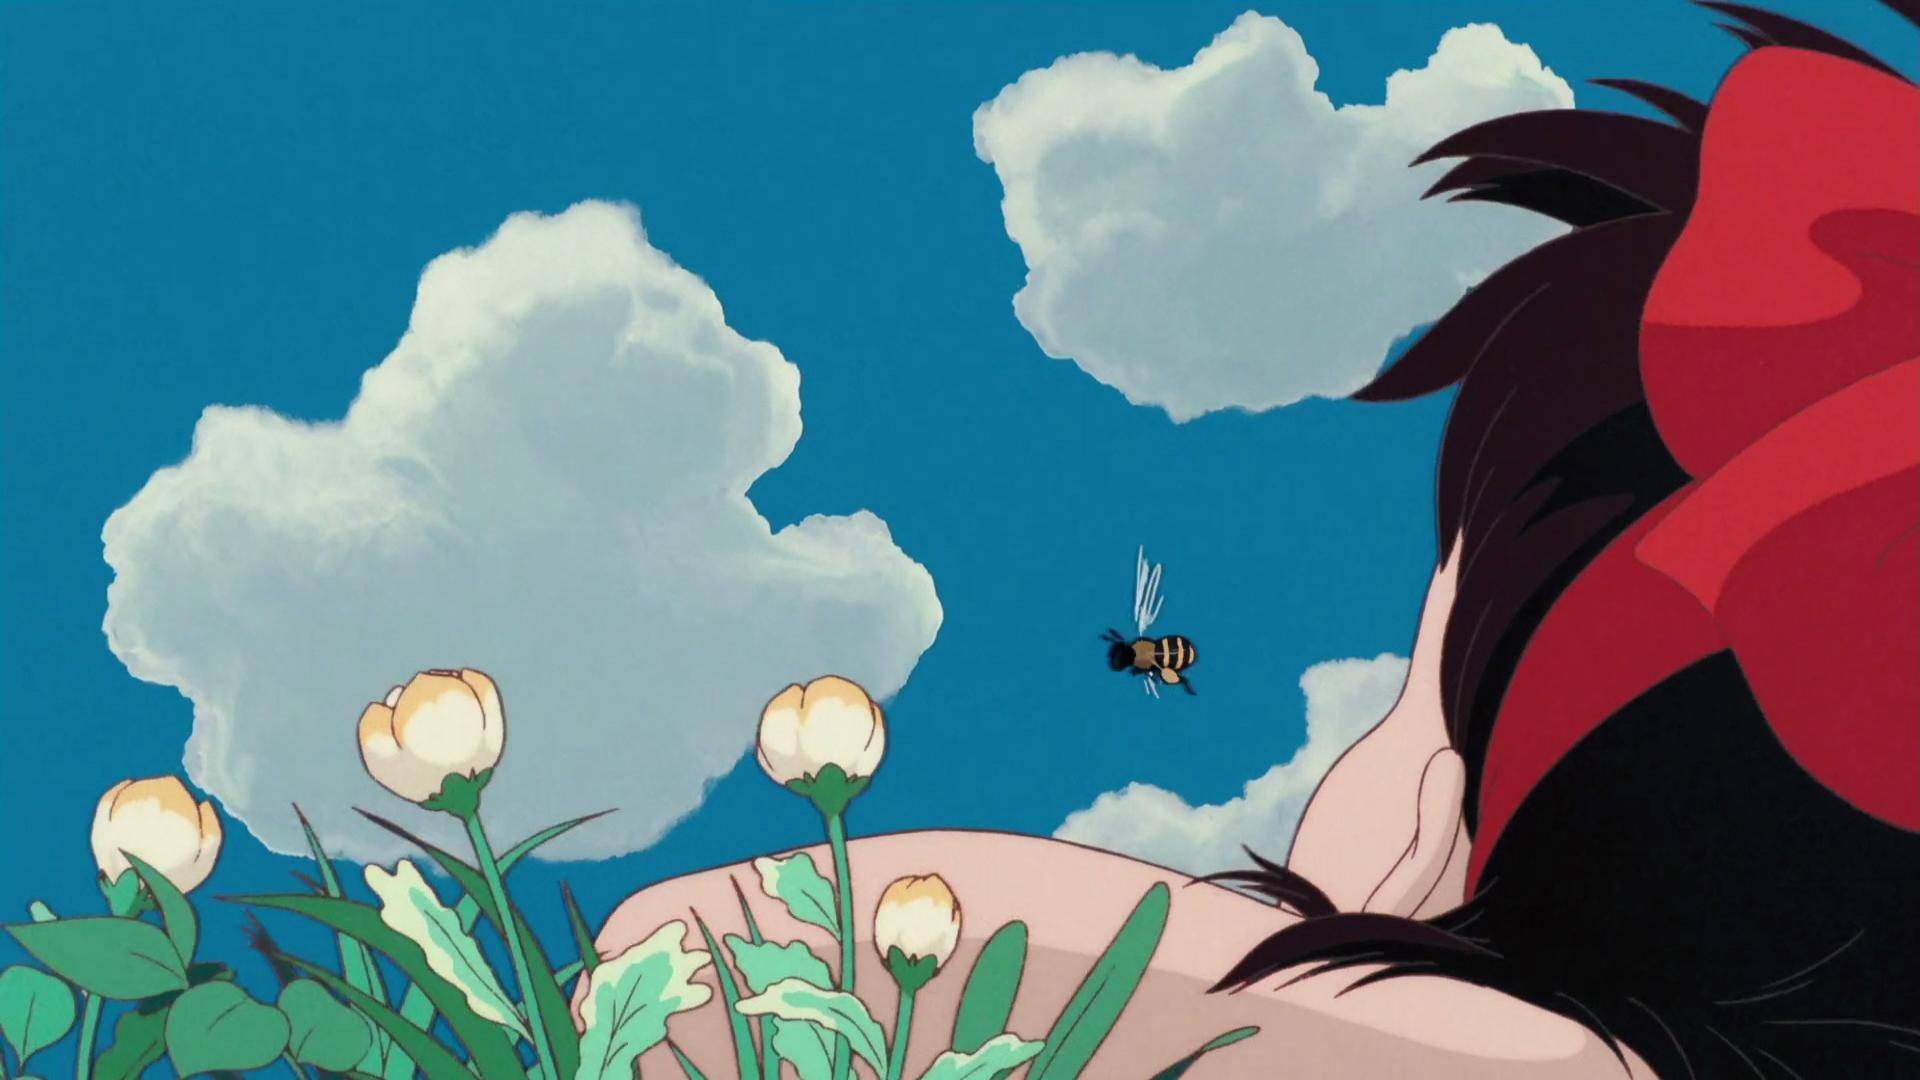 Kiki S Delivery Service Hd Wallpapers Wallpaper Cave